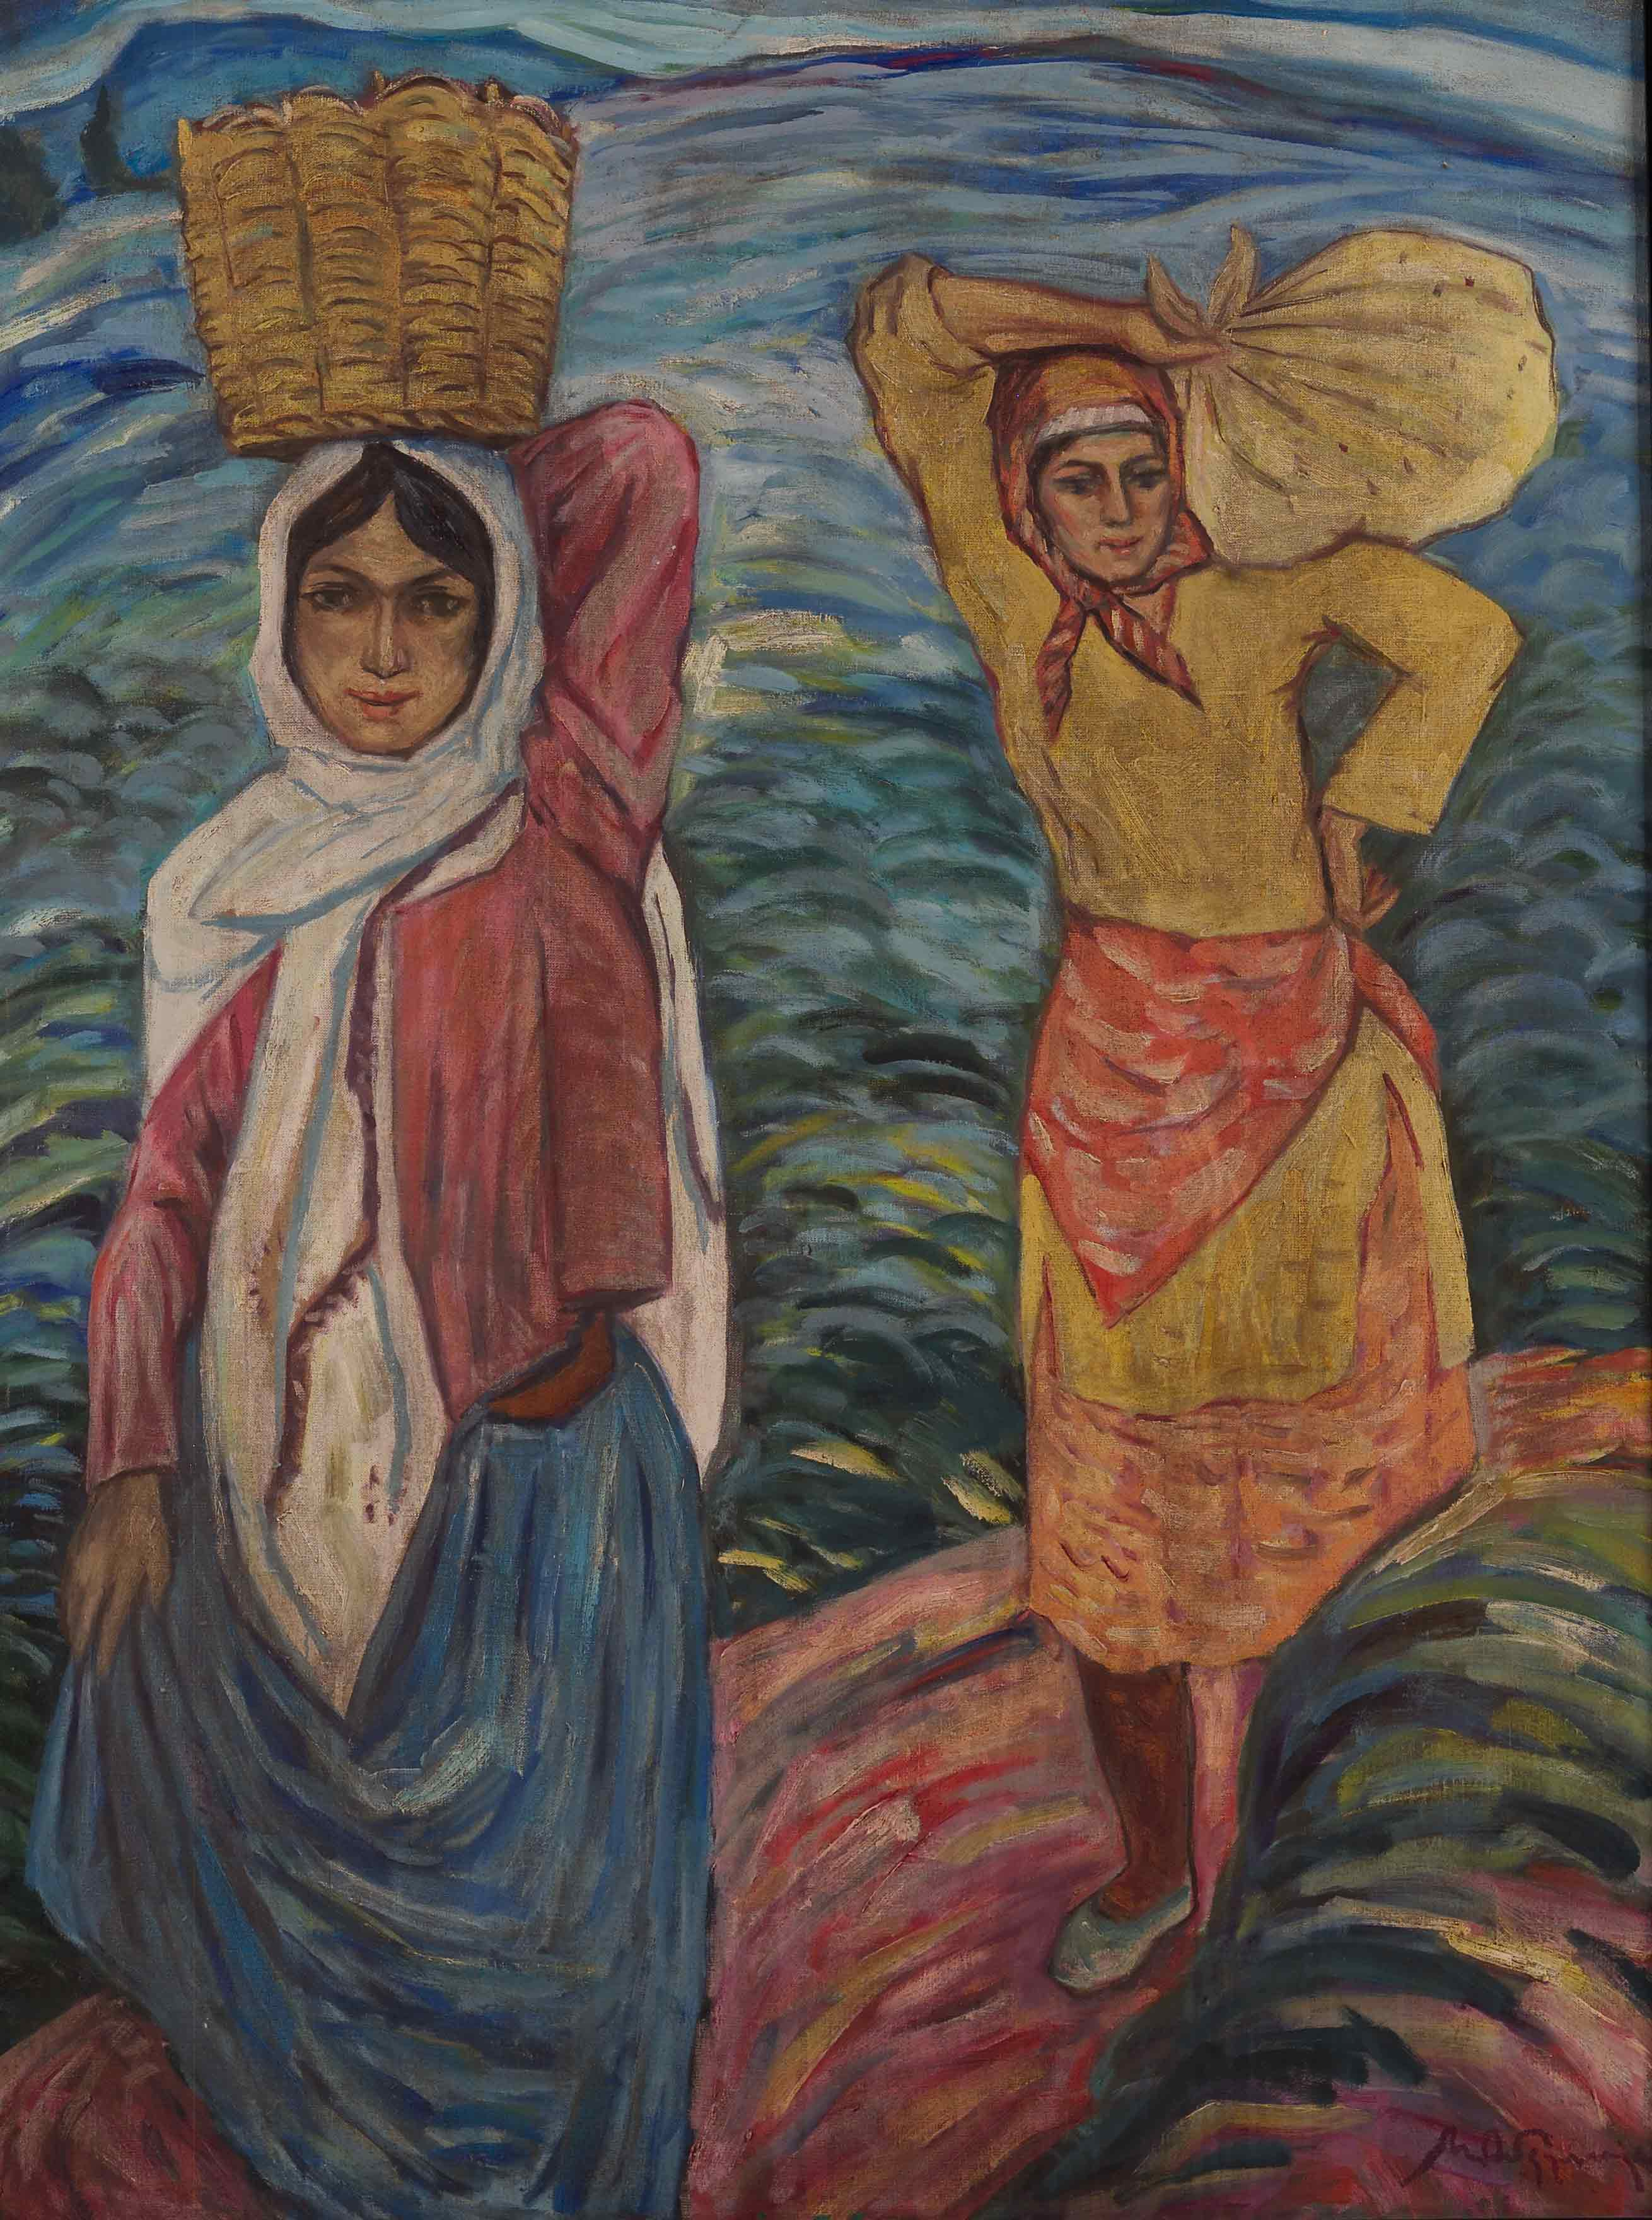 Women carrying cargo